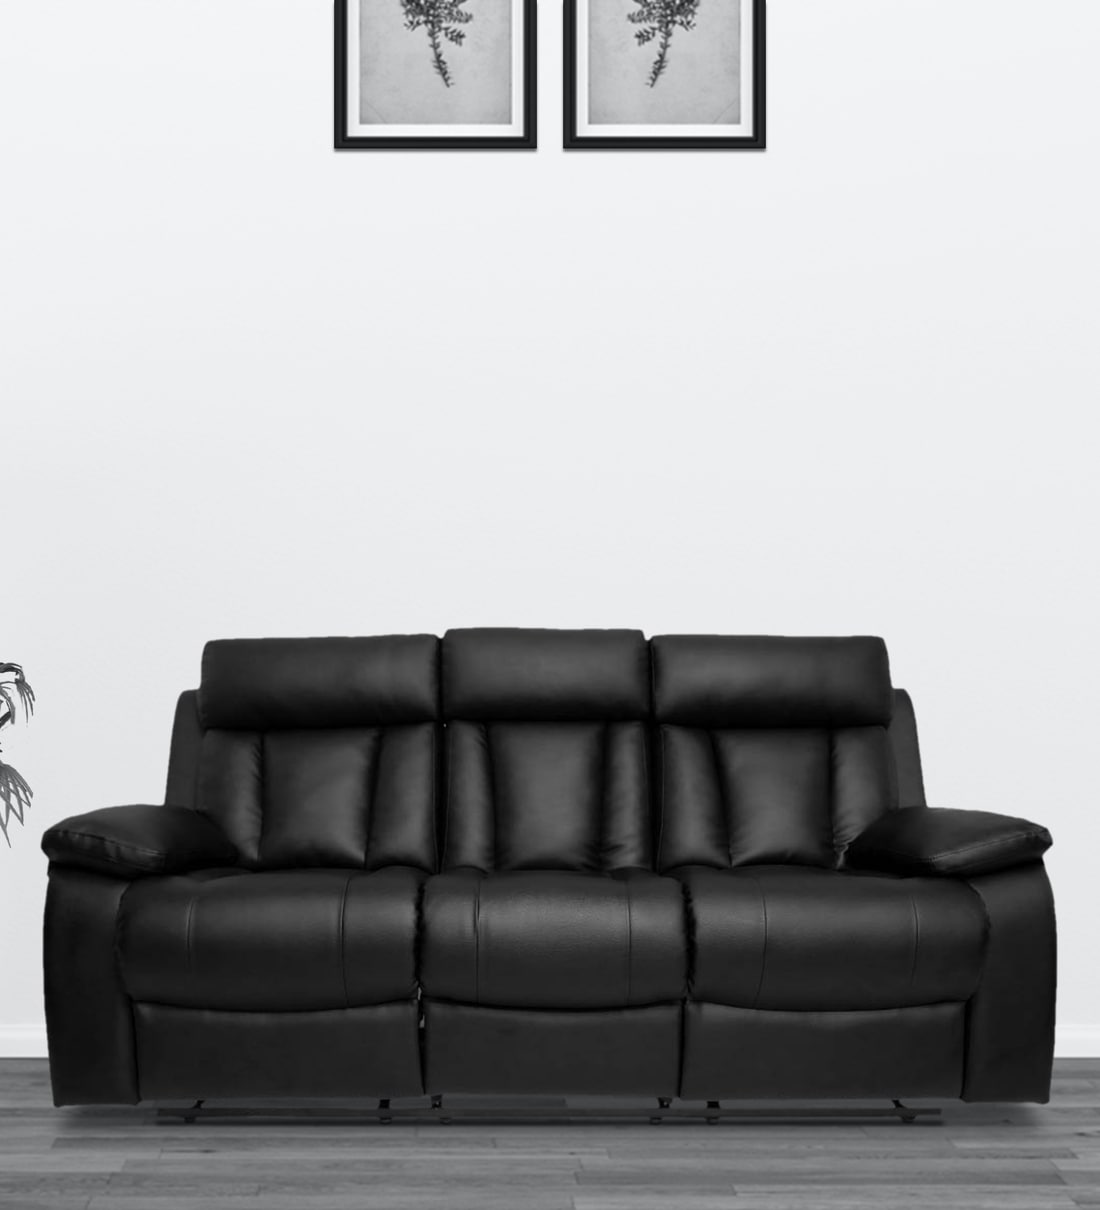 Buy Magna 3 Seater Manual Recliner Sofa In Black Colour By Recliners India Online Manual 3 Seater Recliners Recliners Furniture Pepperfry Product